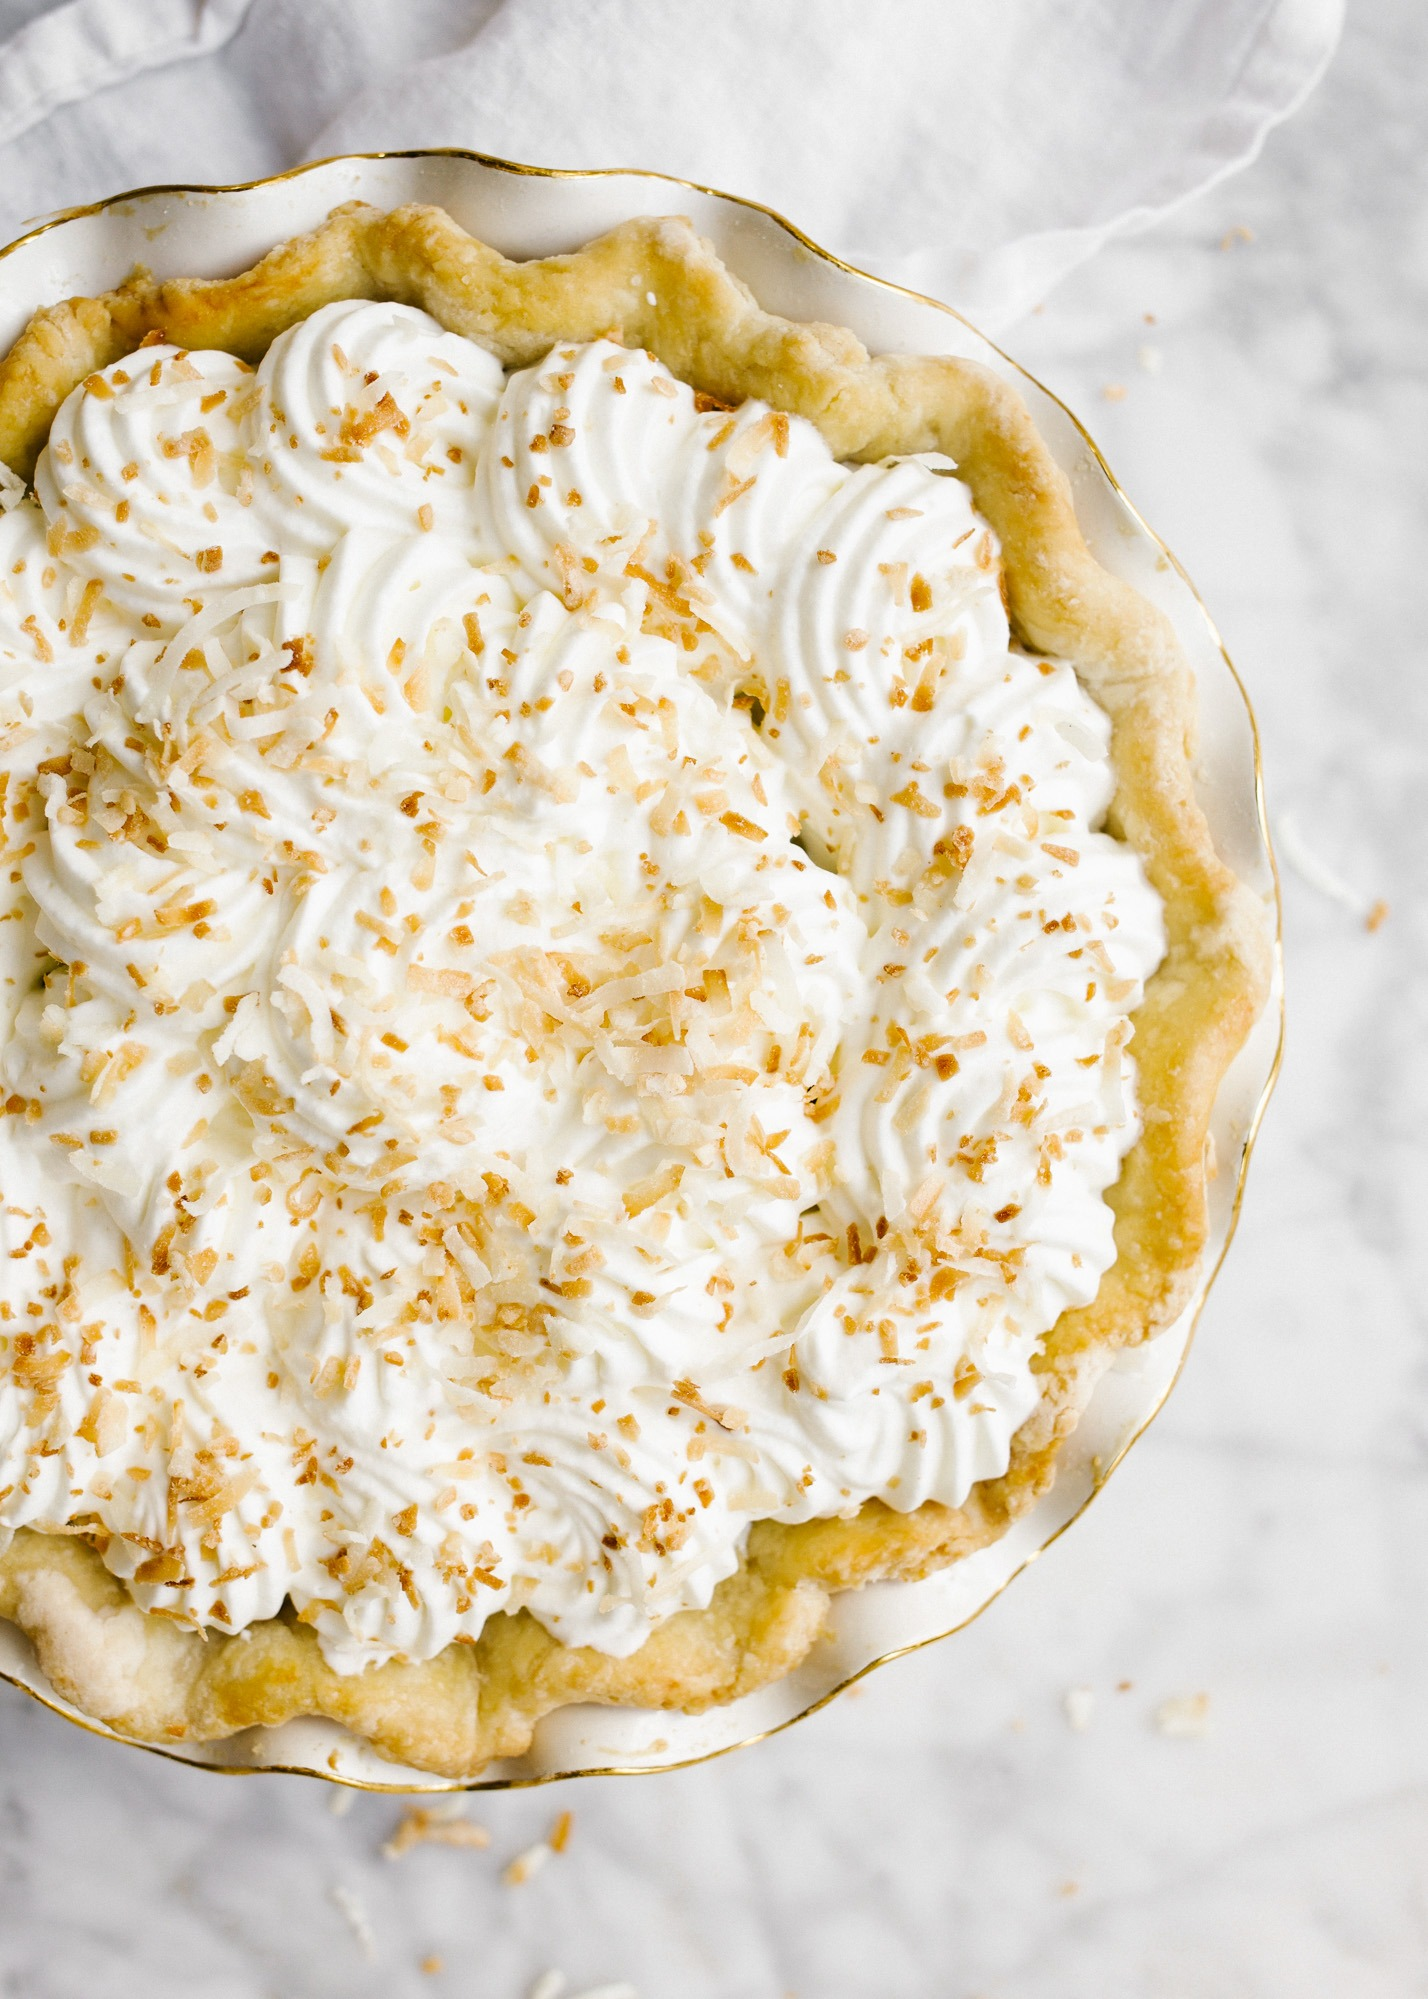 Southern Coconut Cream Pie and our Trip to the Exumas. This is a stovetop vanilla custard pie flavored with sweetened coconut flakes and topped with a homemade whipped cream. The butter and shortening flaky pie crust is filled with the coconut milk filling and it makes for a delicious summertime or spring tropical flavored bake ahead pie for dessert. Learn how simple it is to make southern pies on thewoodandspoon.com